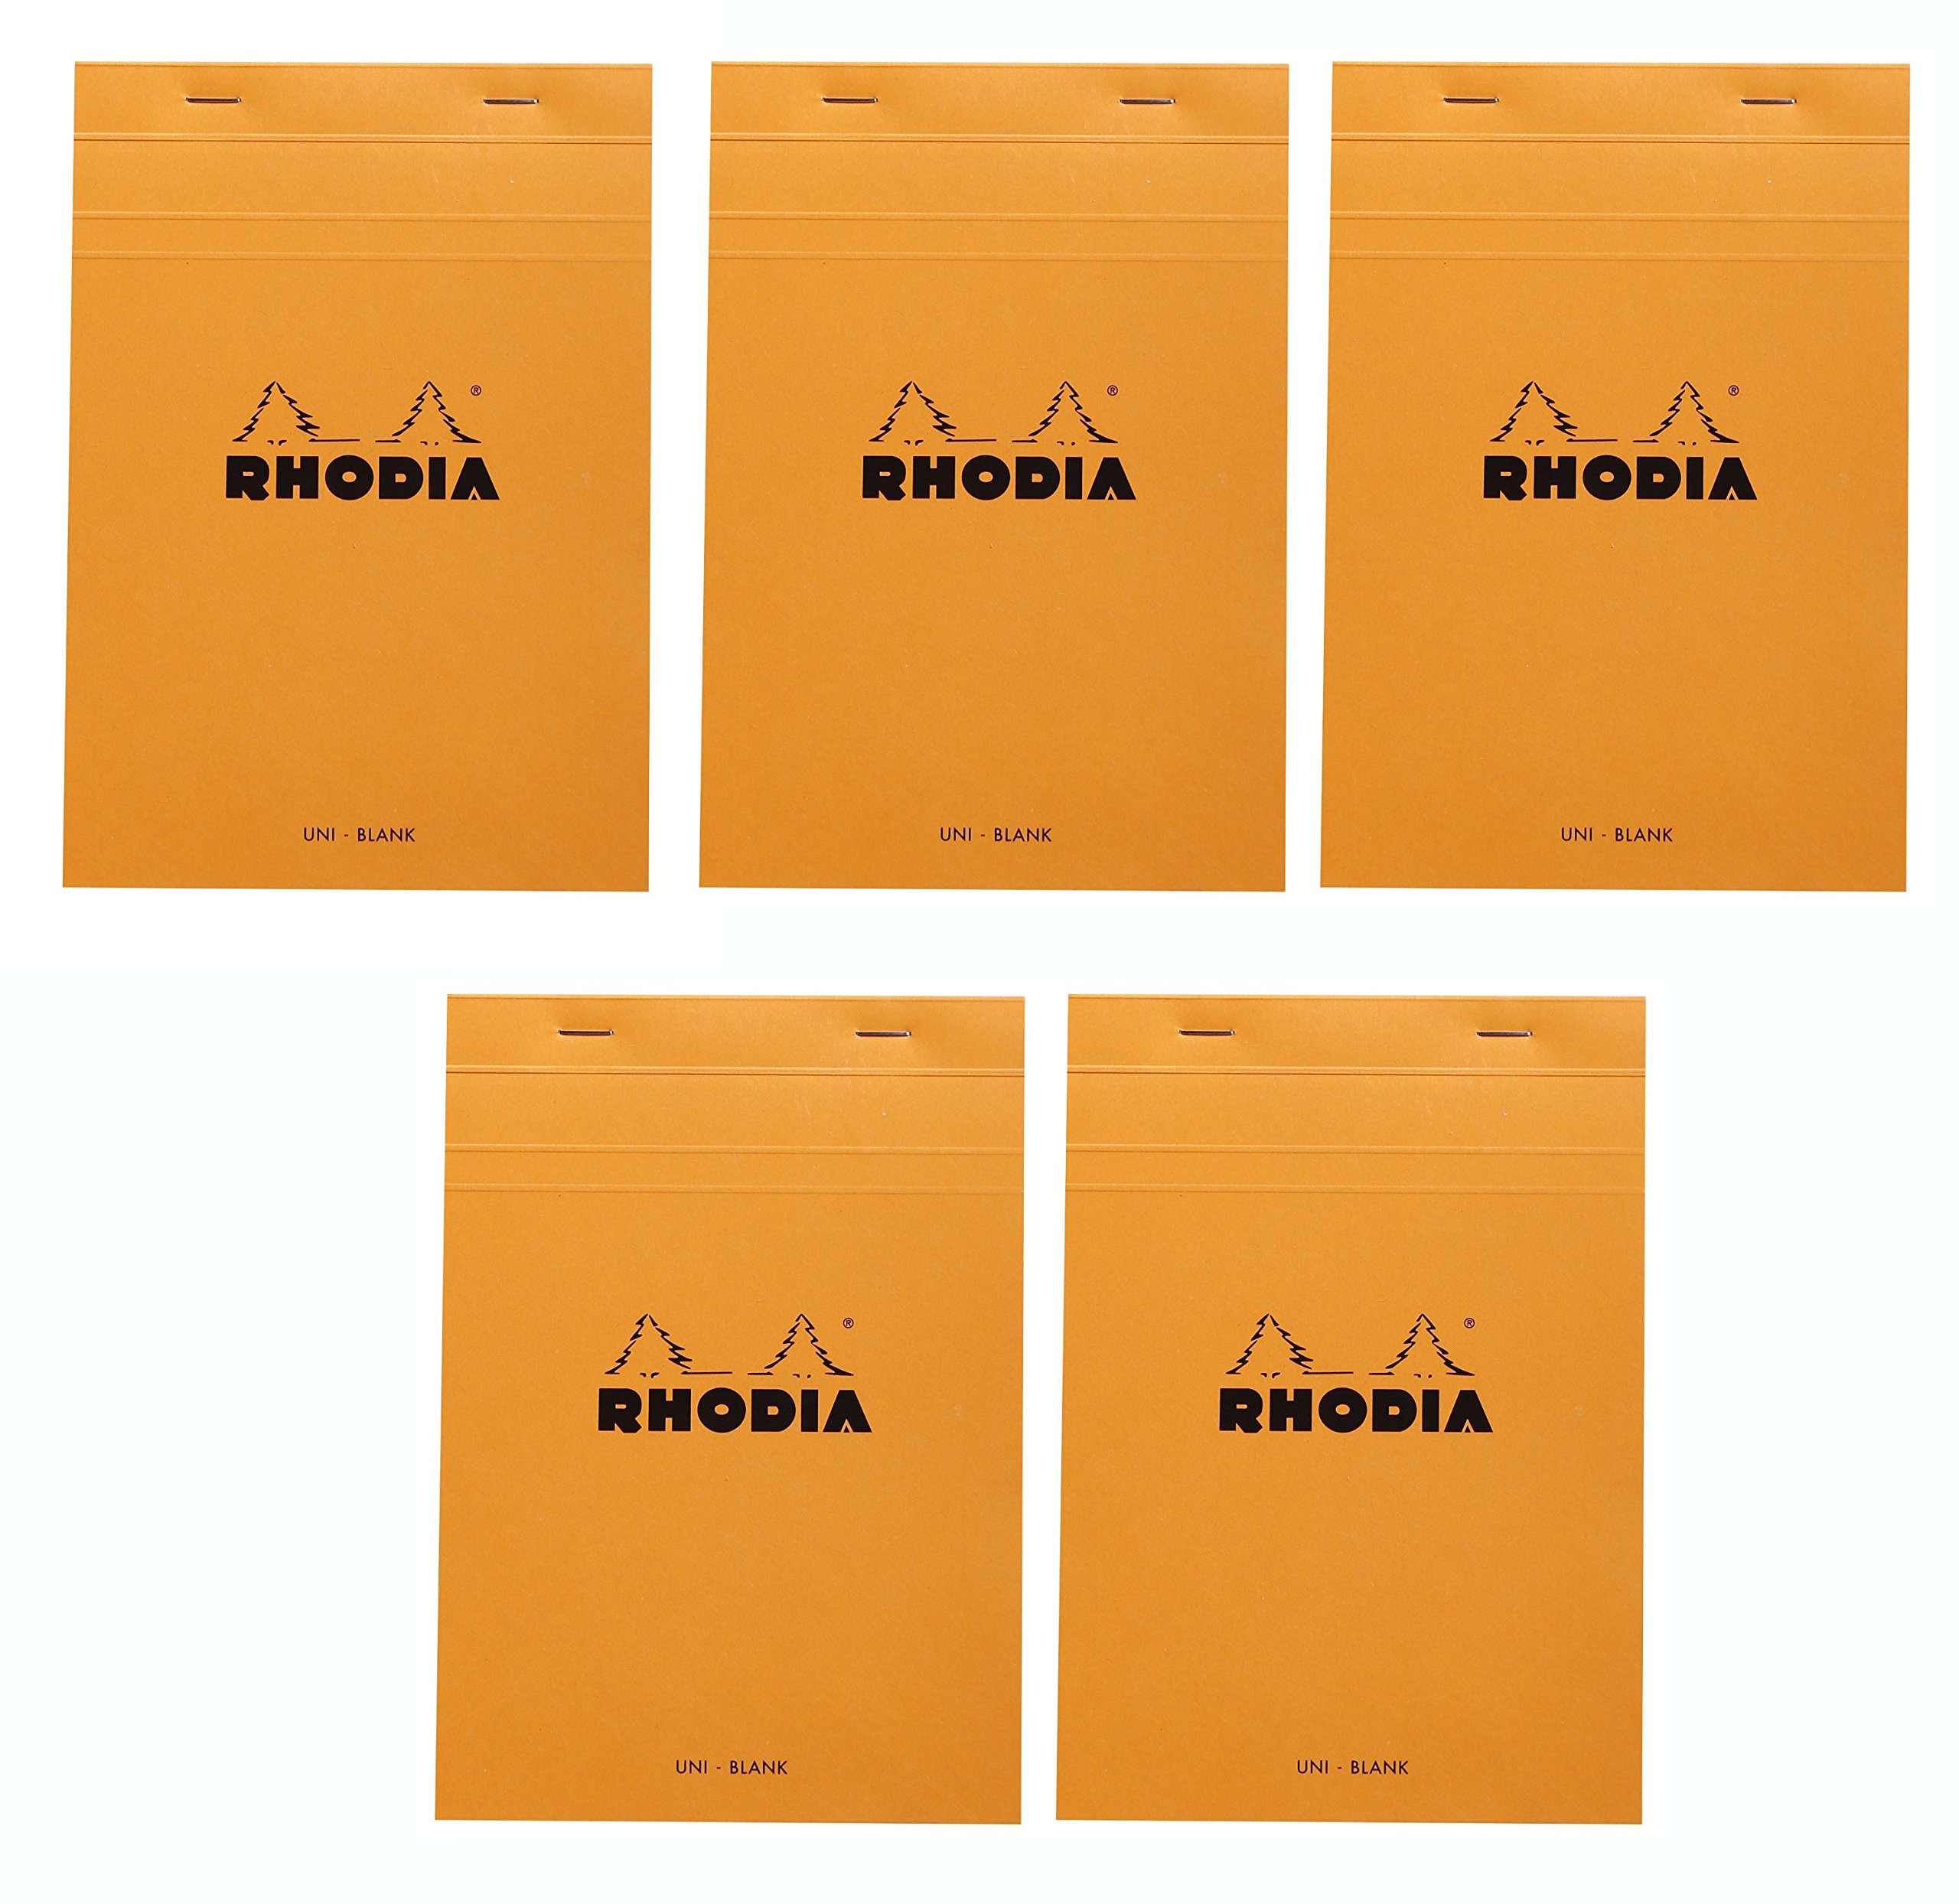 Rhodia Classic Orange Notepad blank - 6 in. x 8-1/4 in, Pack of 5 by Rhodia